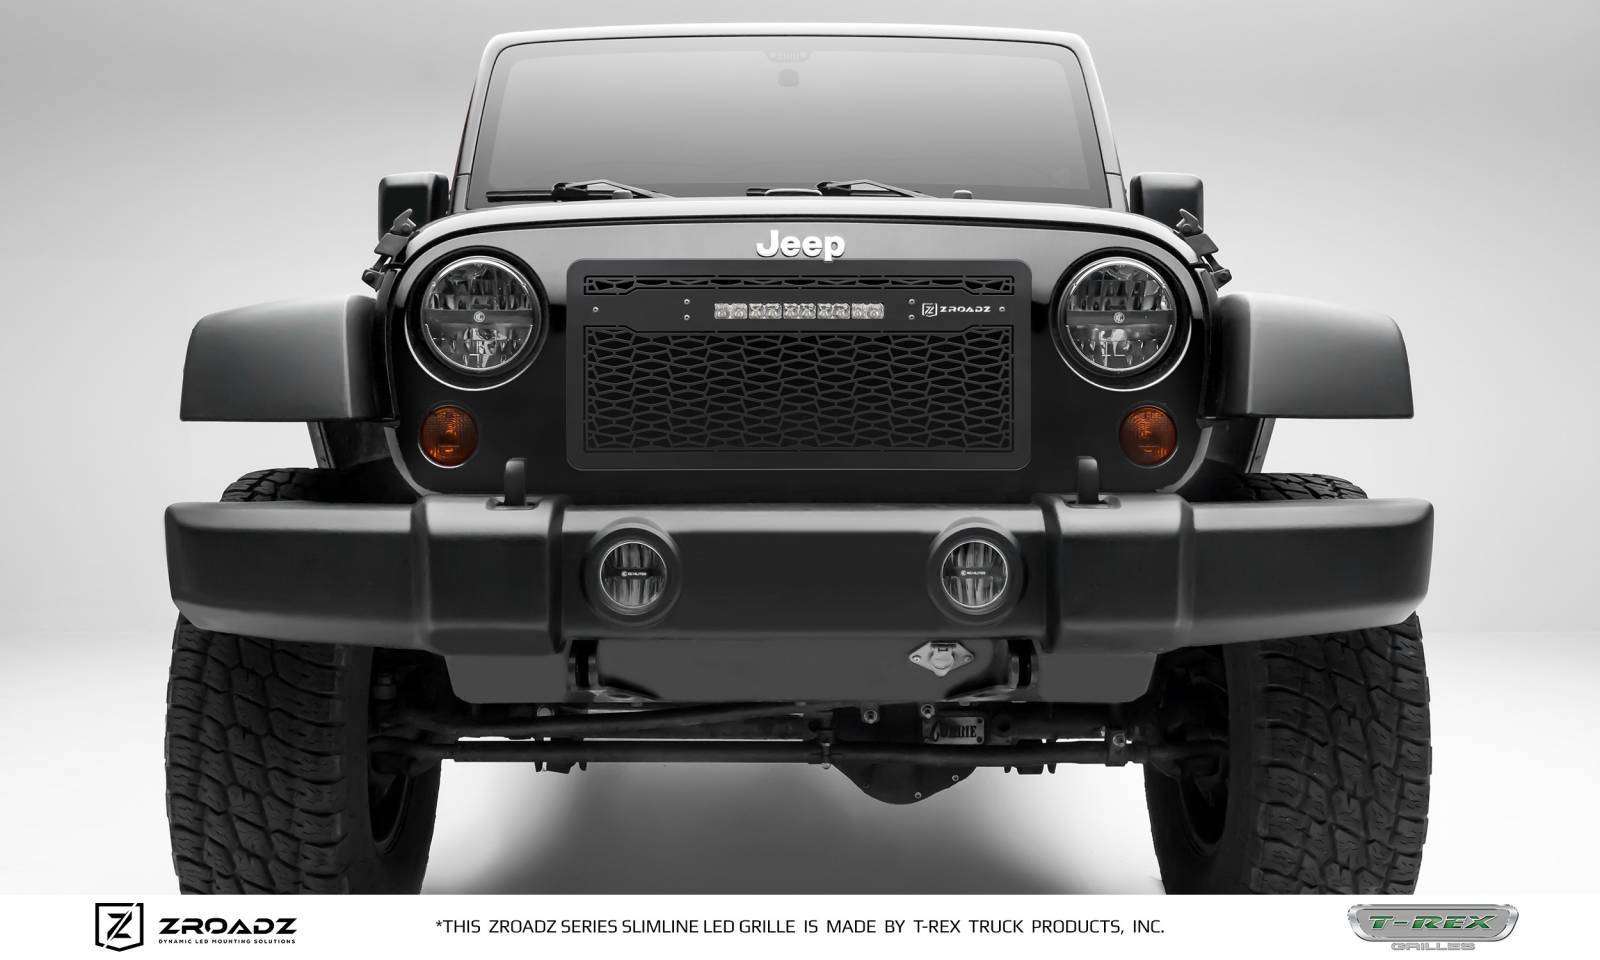 T-REX Jeep Wrangler - ZROADZ Series - Main Insert - Grille w/ One 10 Inch Slim Line Single Row - LED Light Bar - Includes Universal Wiring Harness - Part# Z314831-10C